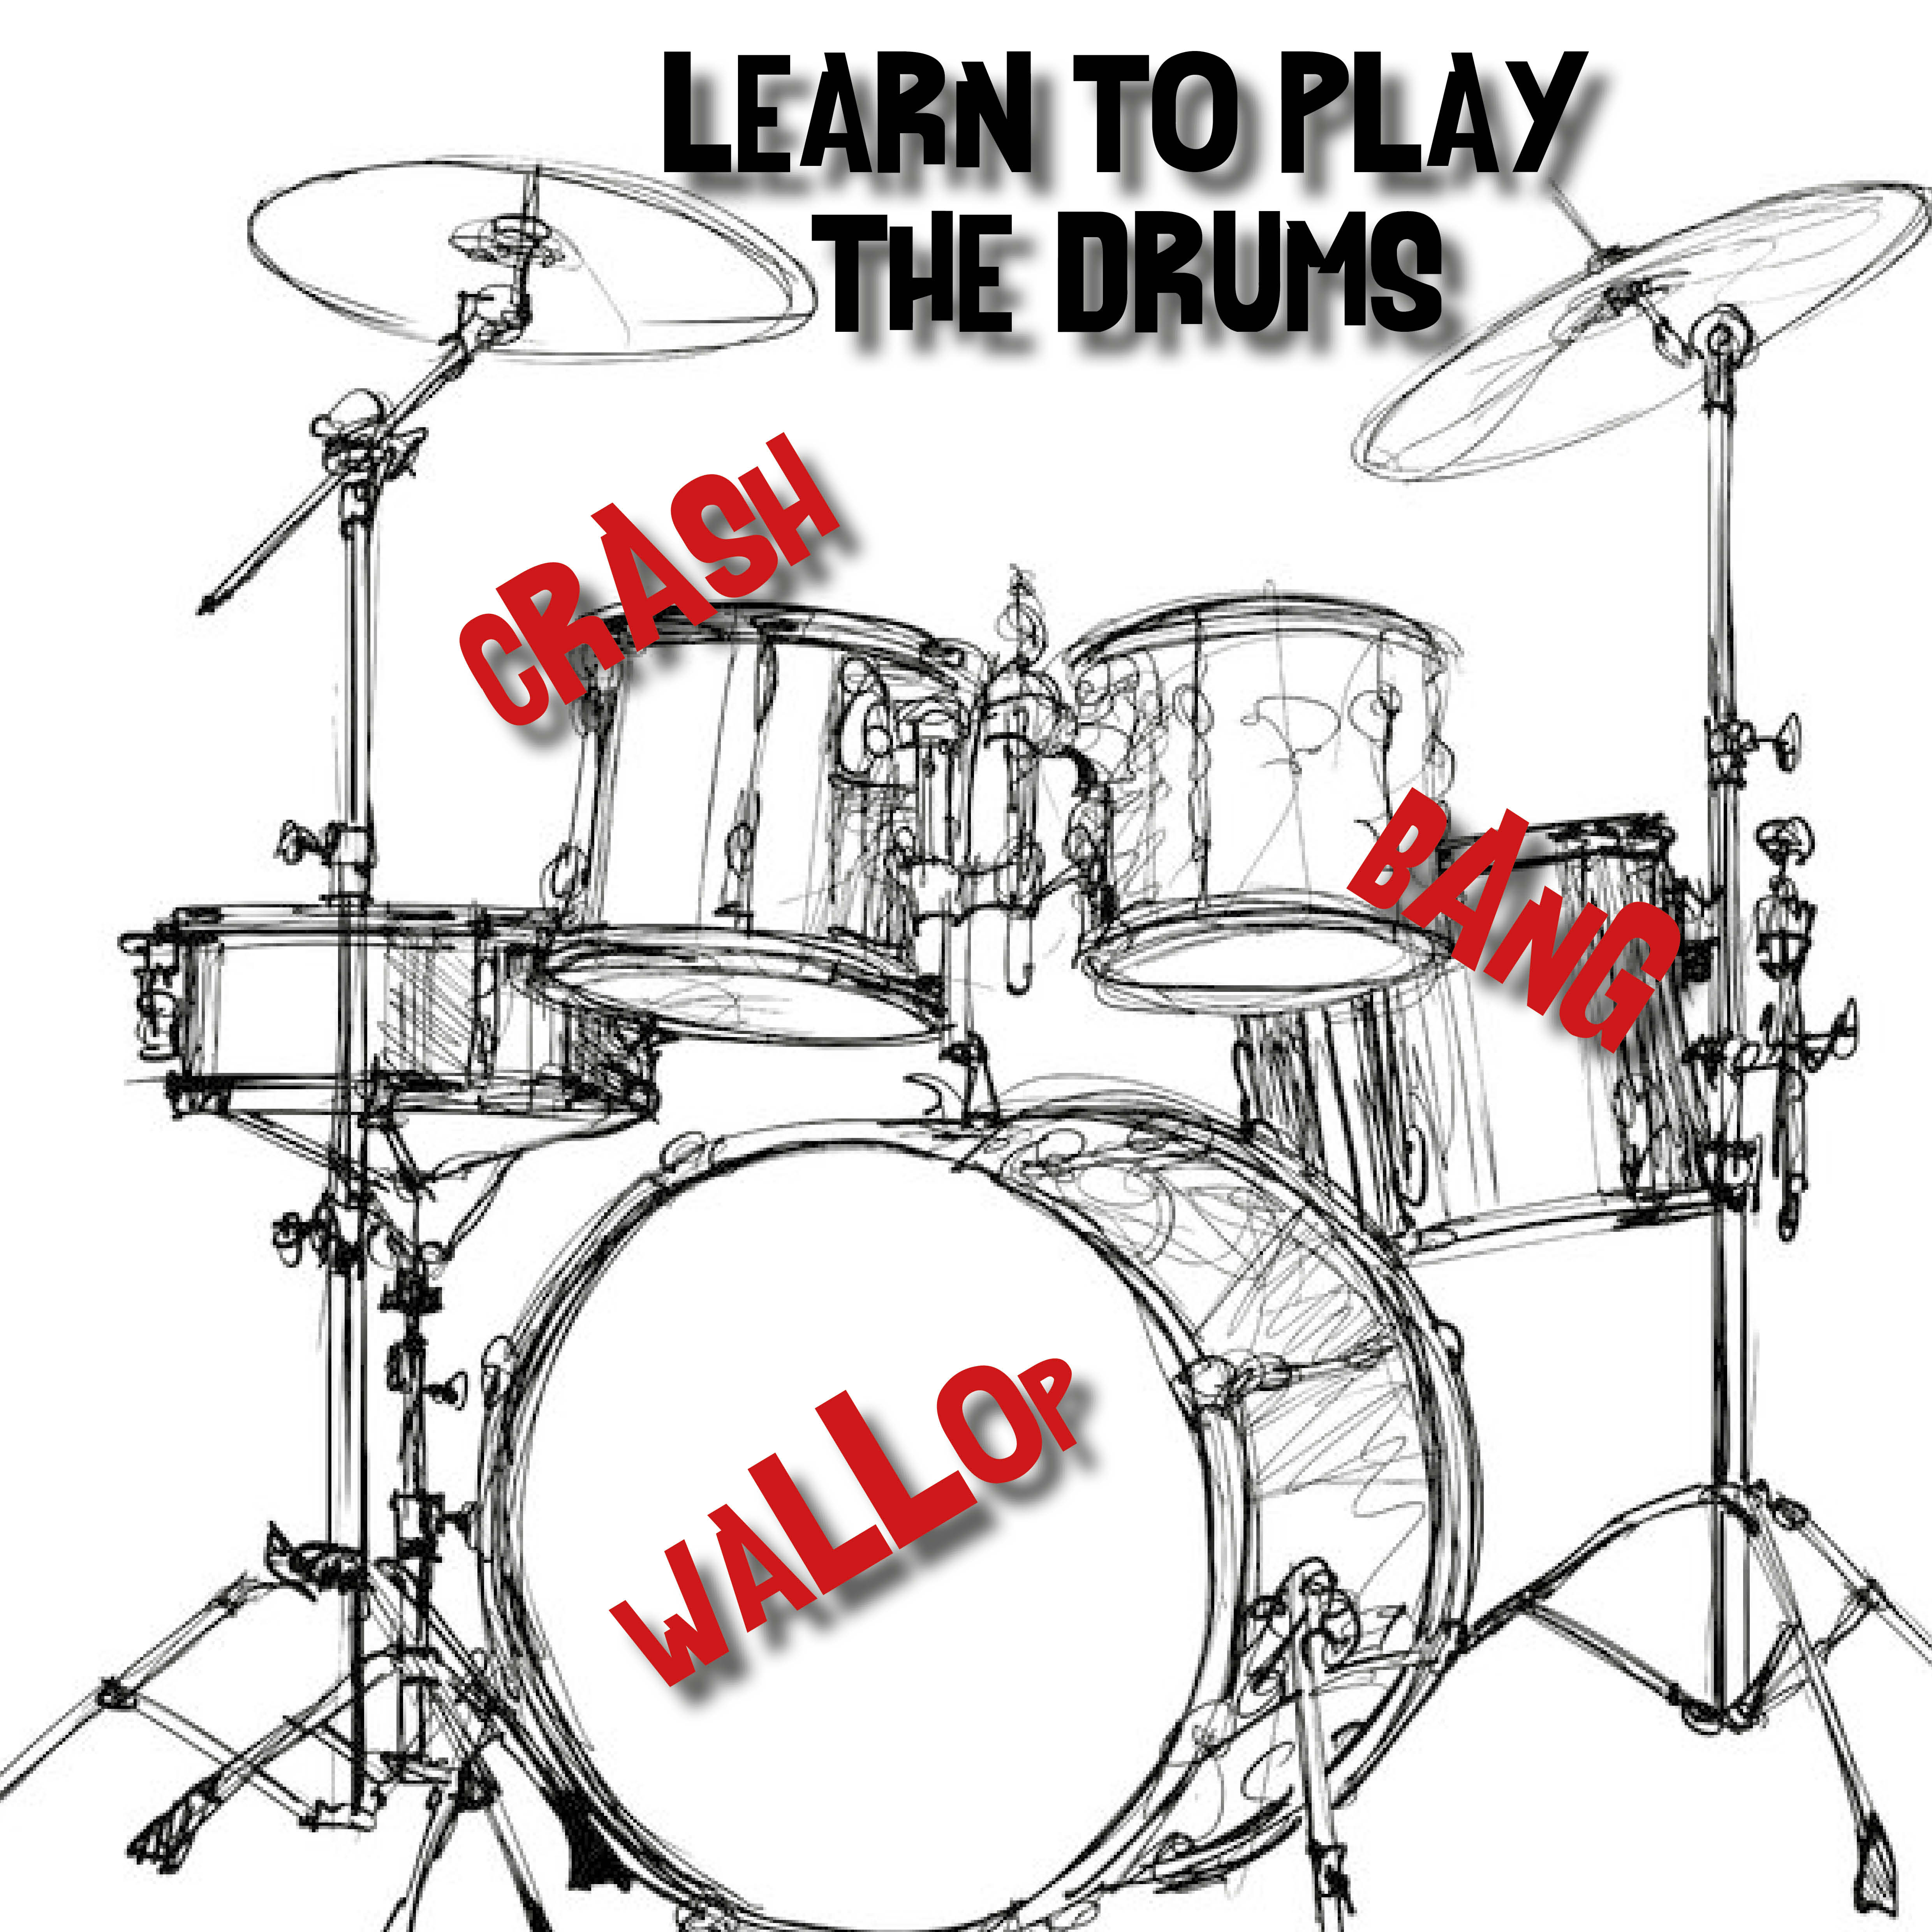 Drumming Lessons workshop mentored by Ralph Millington